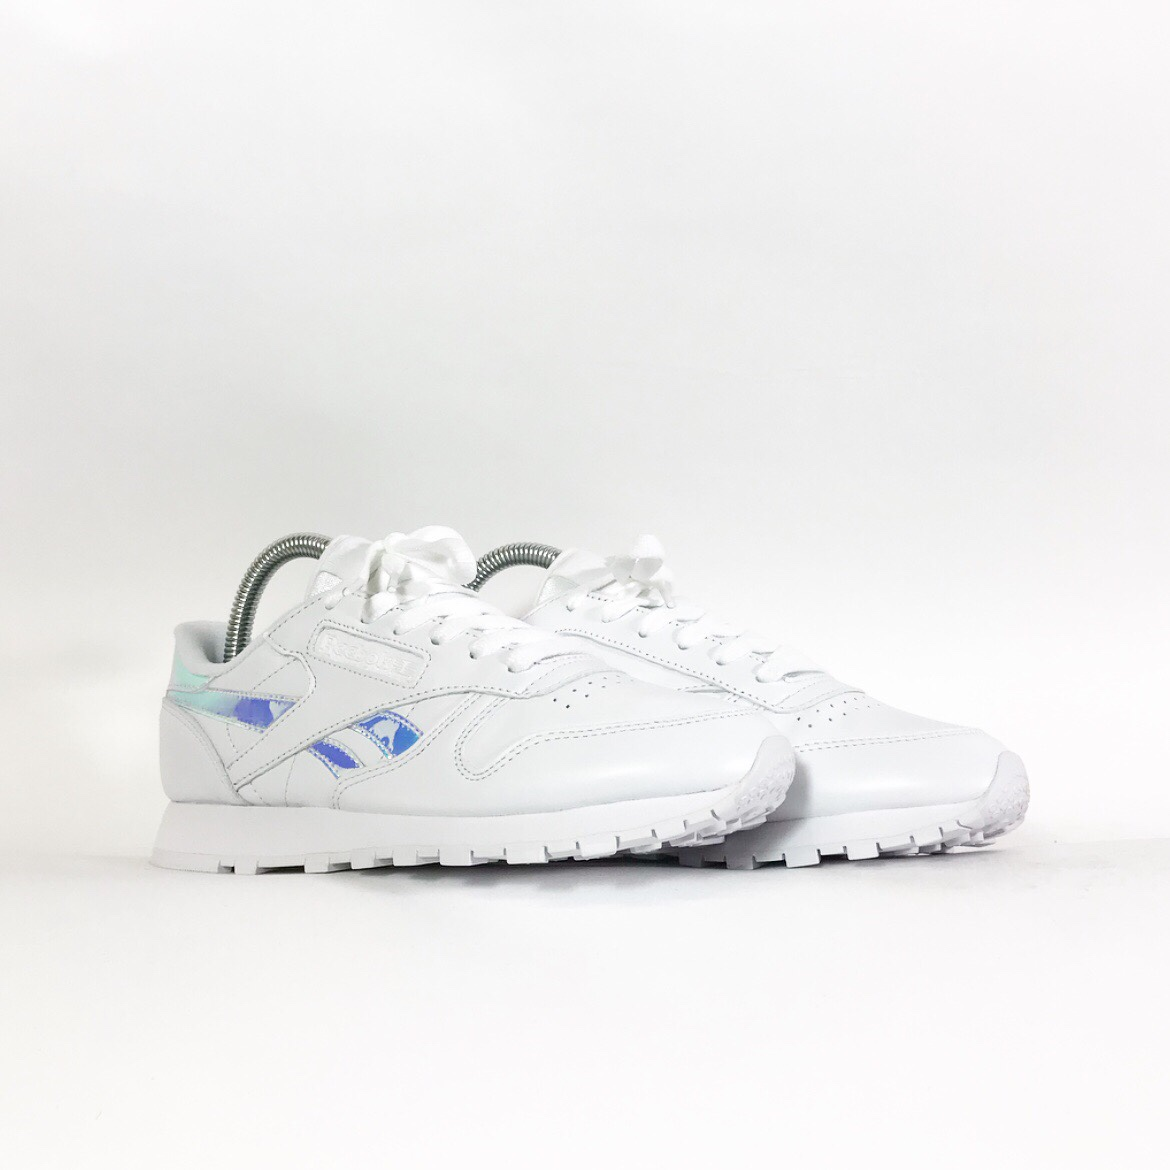 Reebok Classic Leather Iridescent Helt ny med Depop  Brand new with Depop